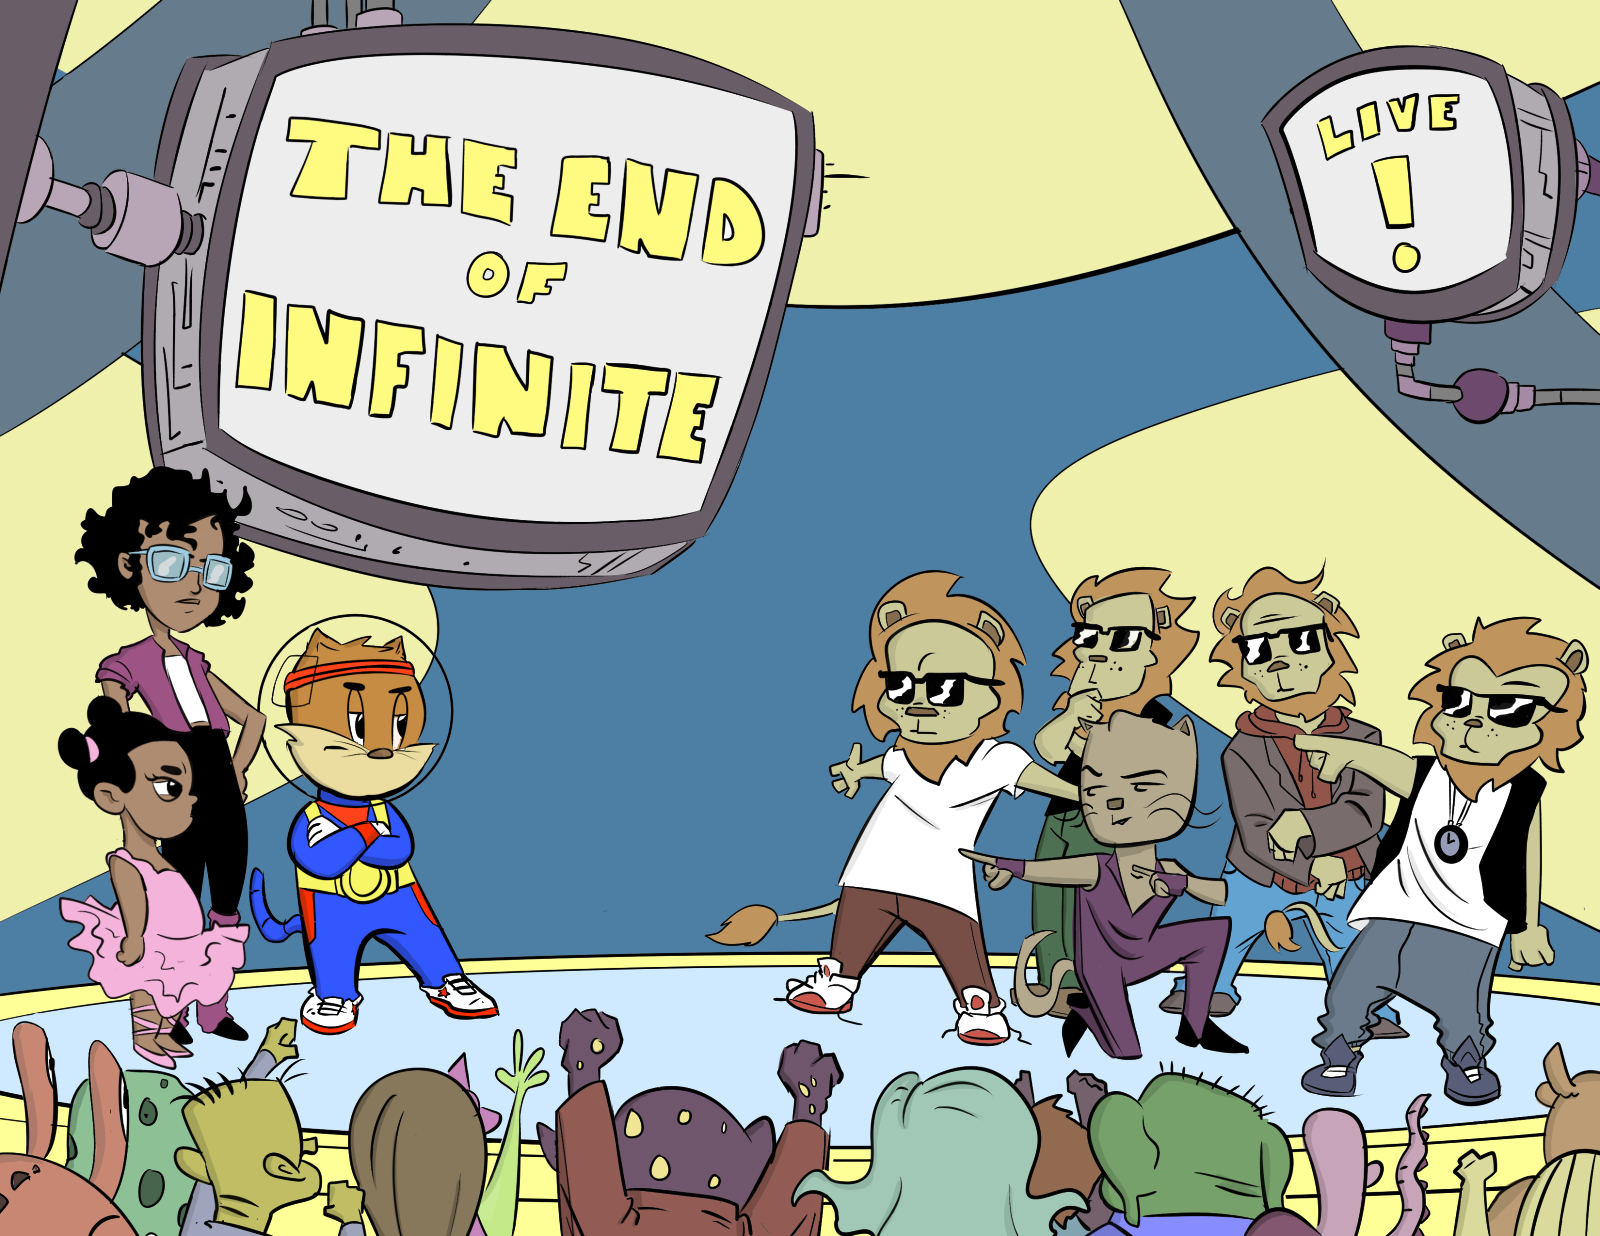 Infinite's End